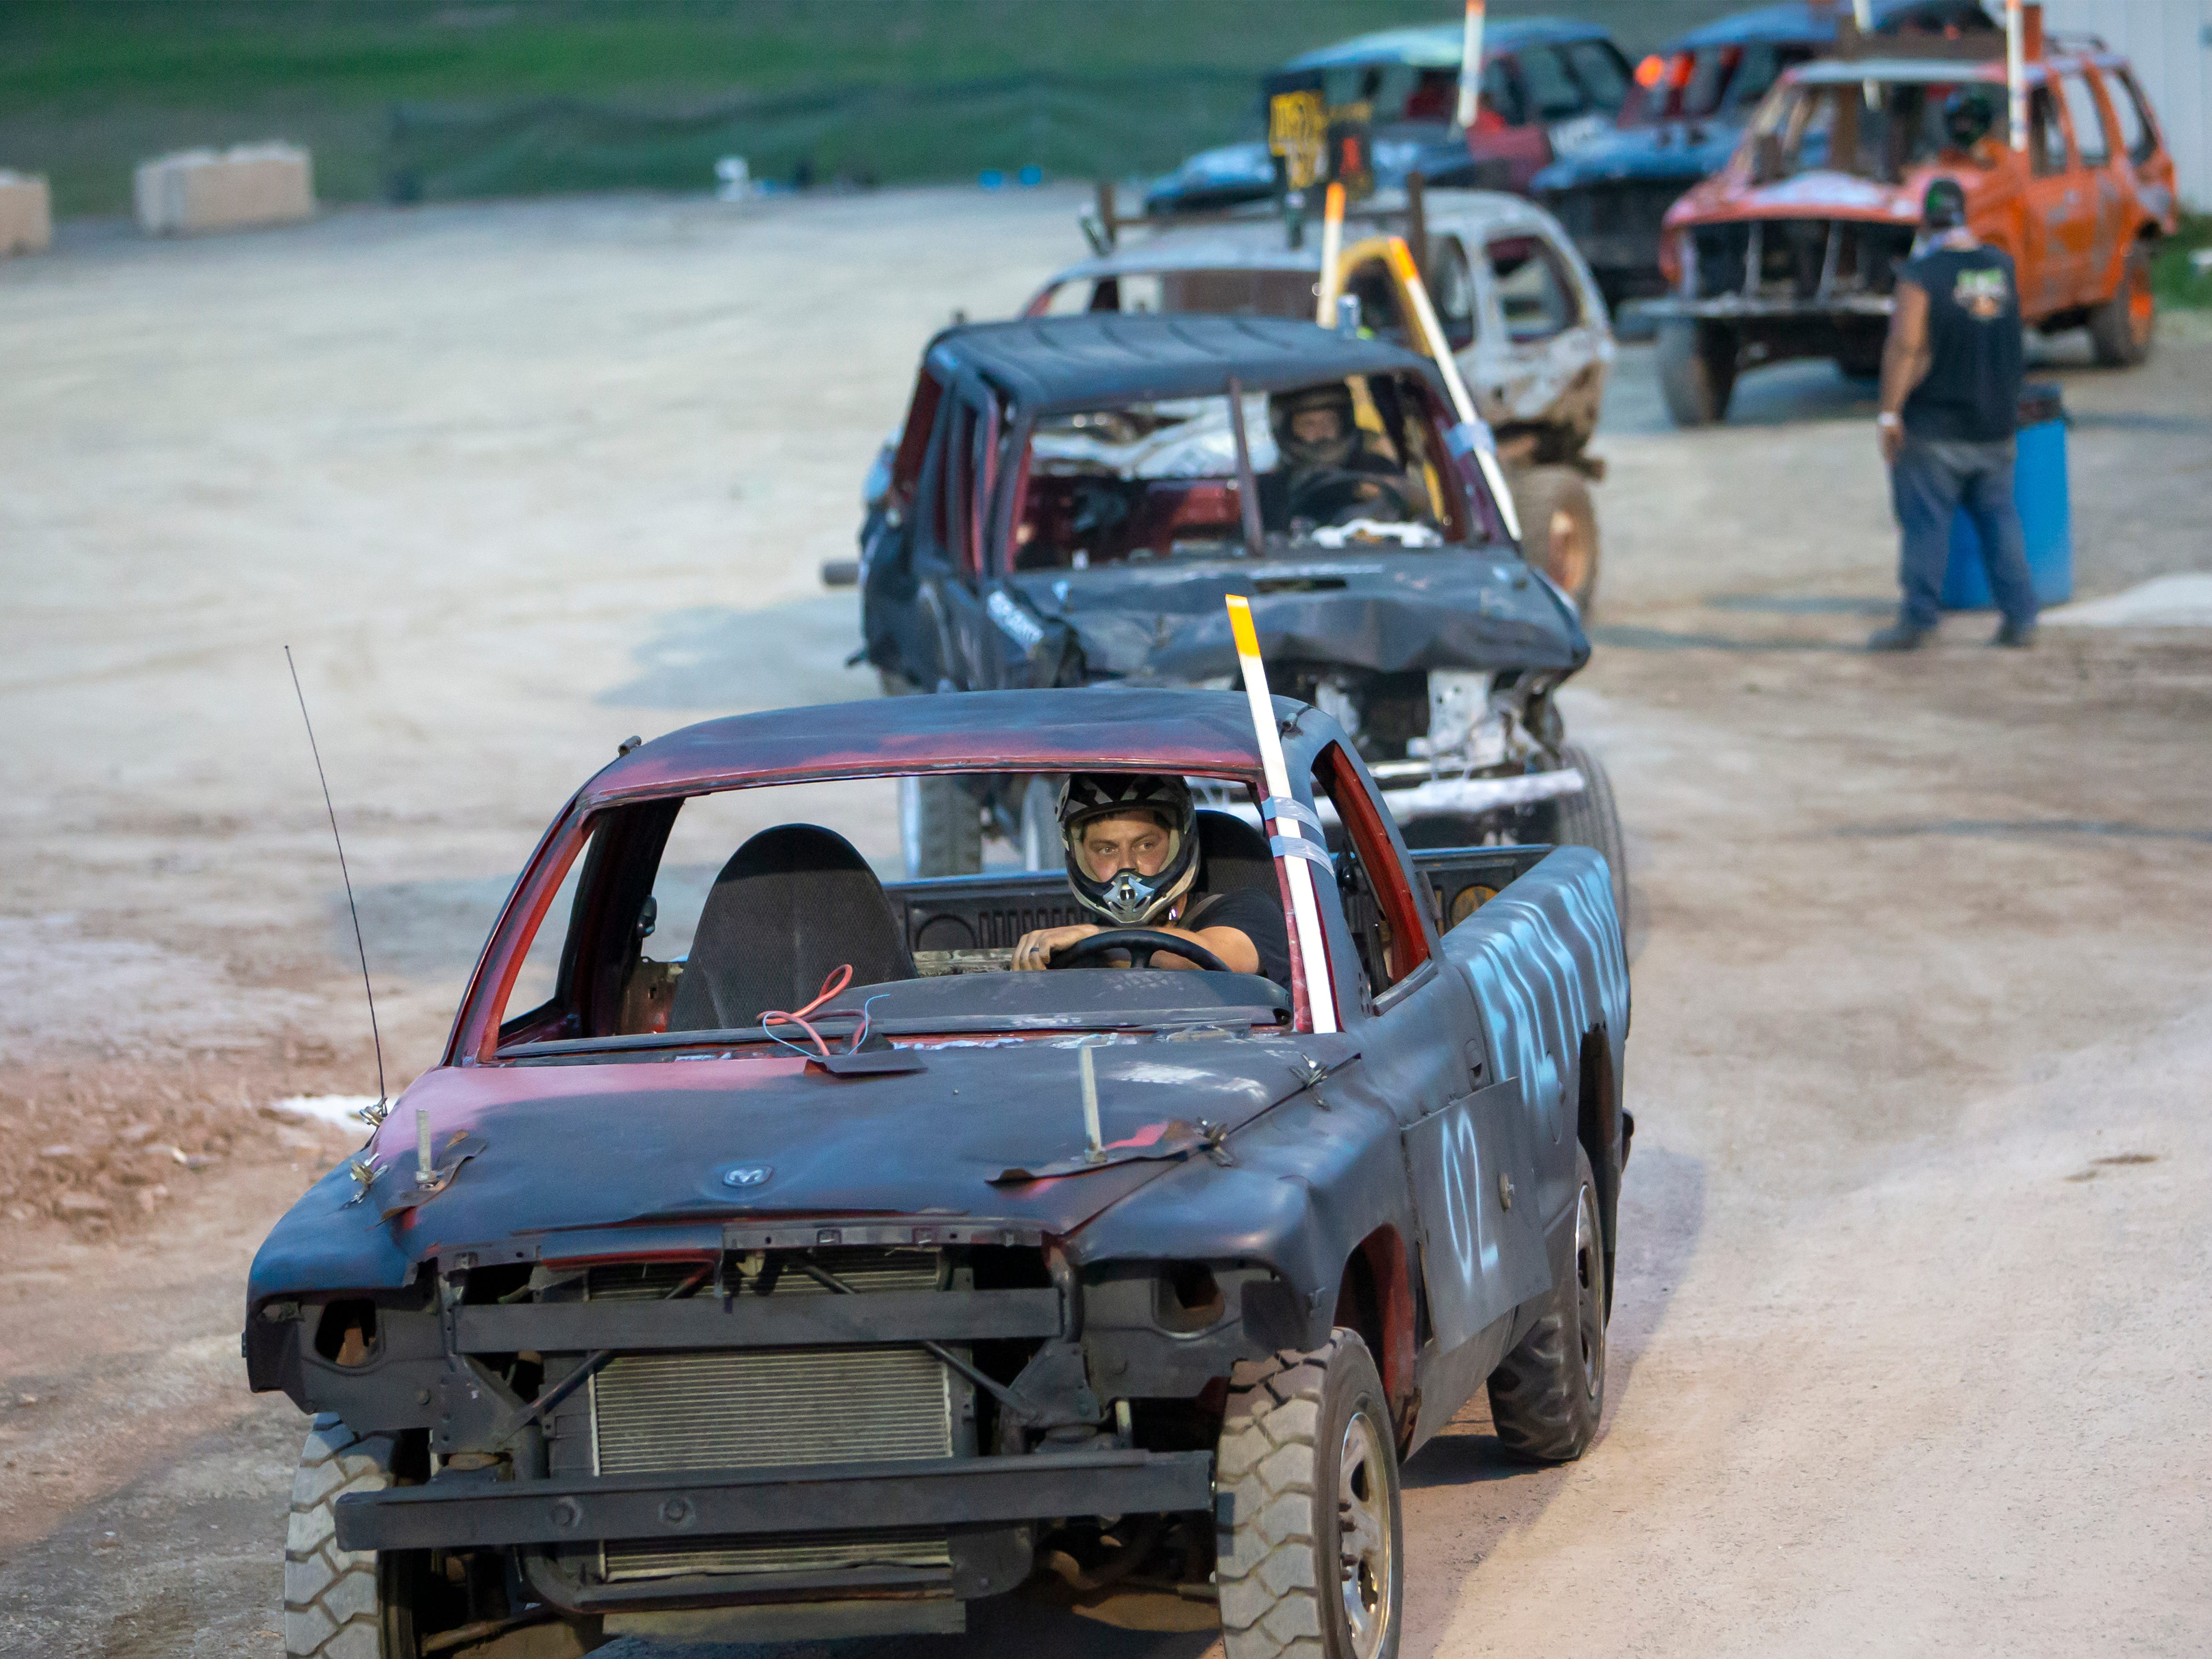 Drivers line into position for the demolition derby during the Winnebago County Fair on Saturday, Aug. 4, 2018.